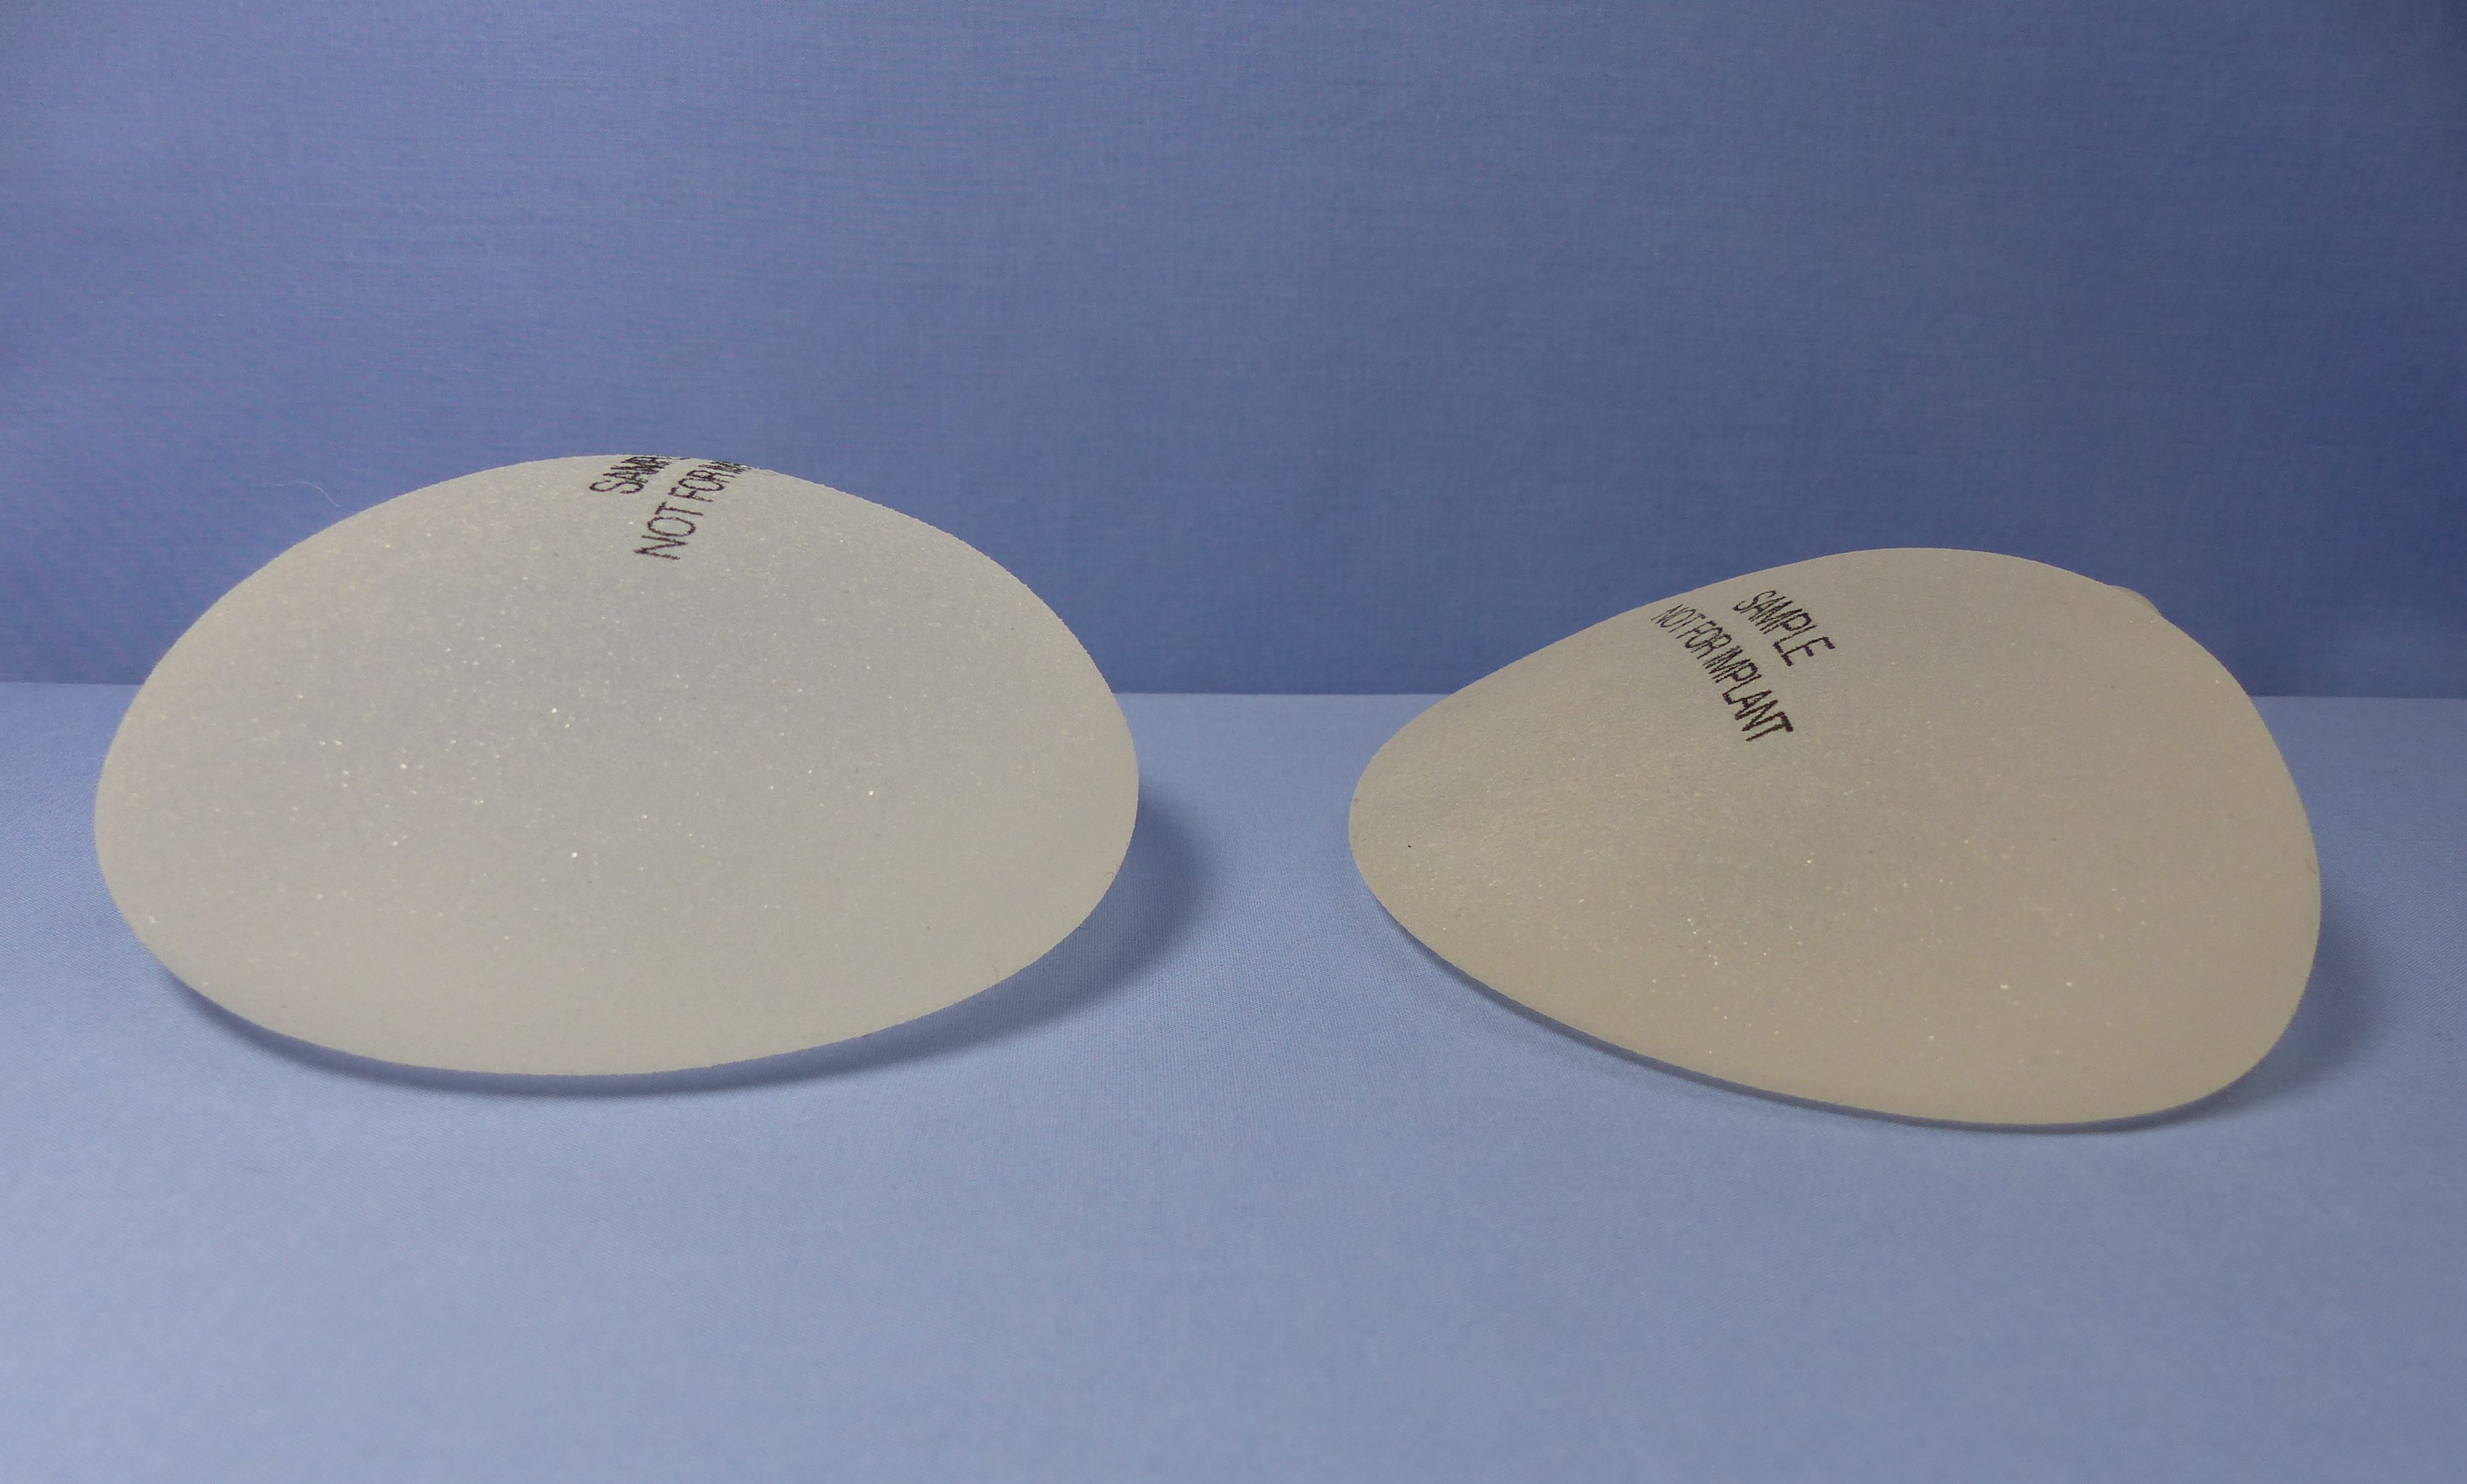 nagor breast implants oliver harley cosmetic surgery